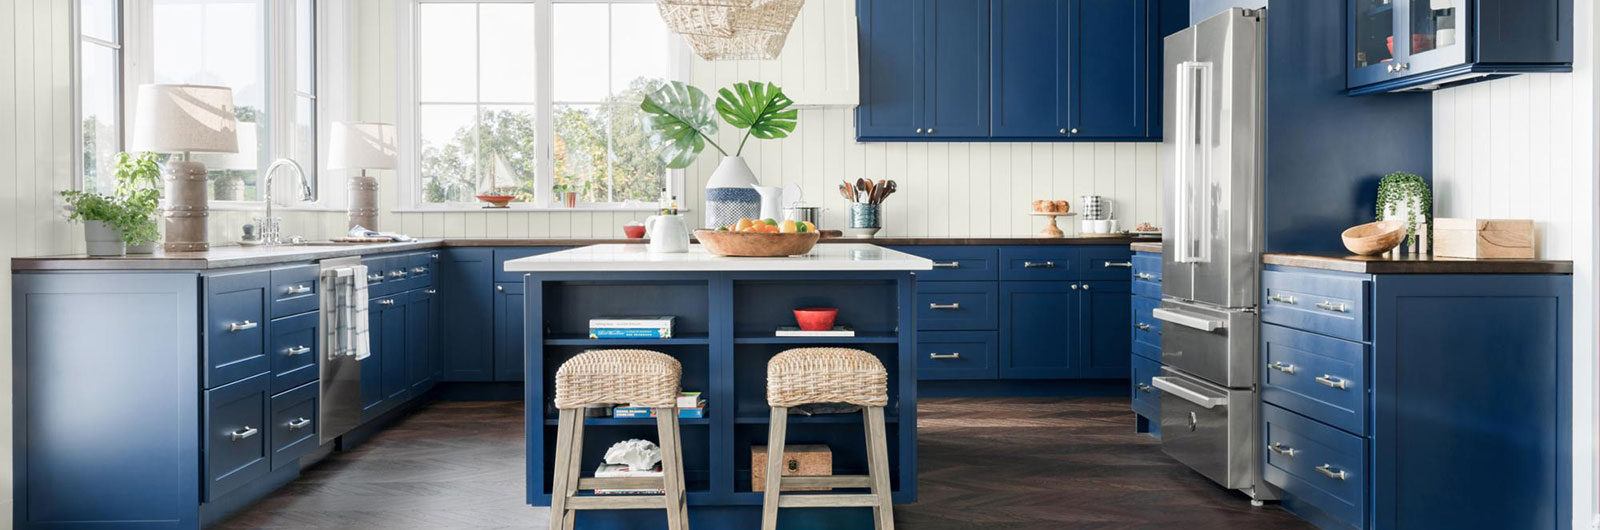 Wide shot of chic kitchen with moody blue cabinets and white walls